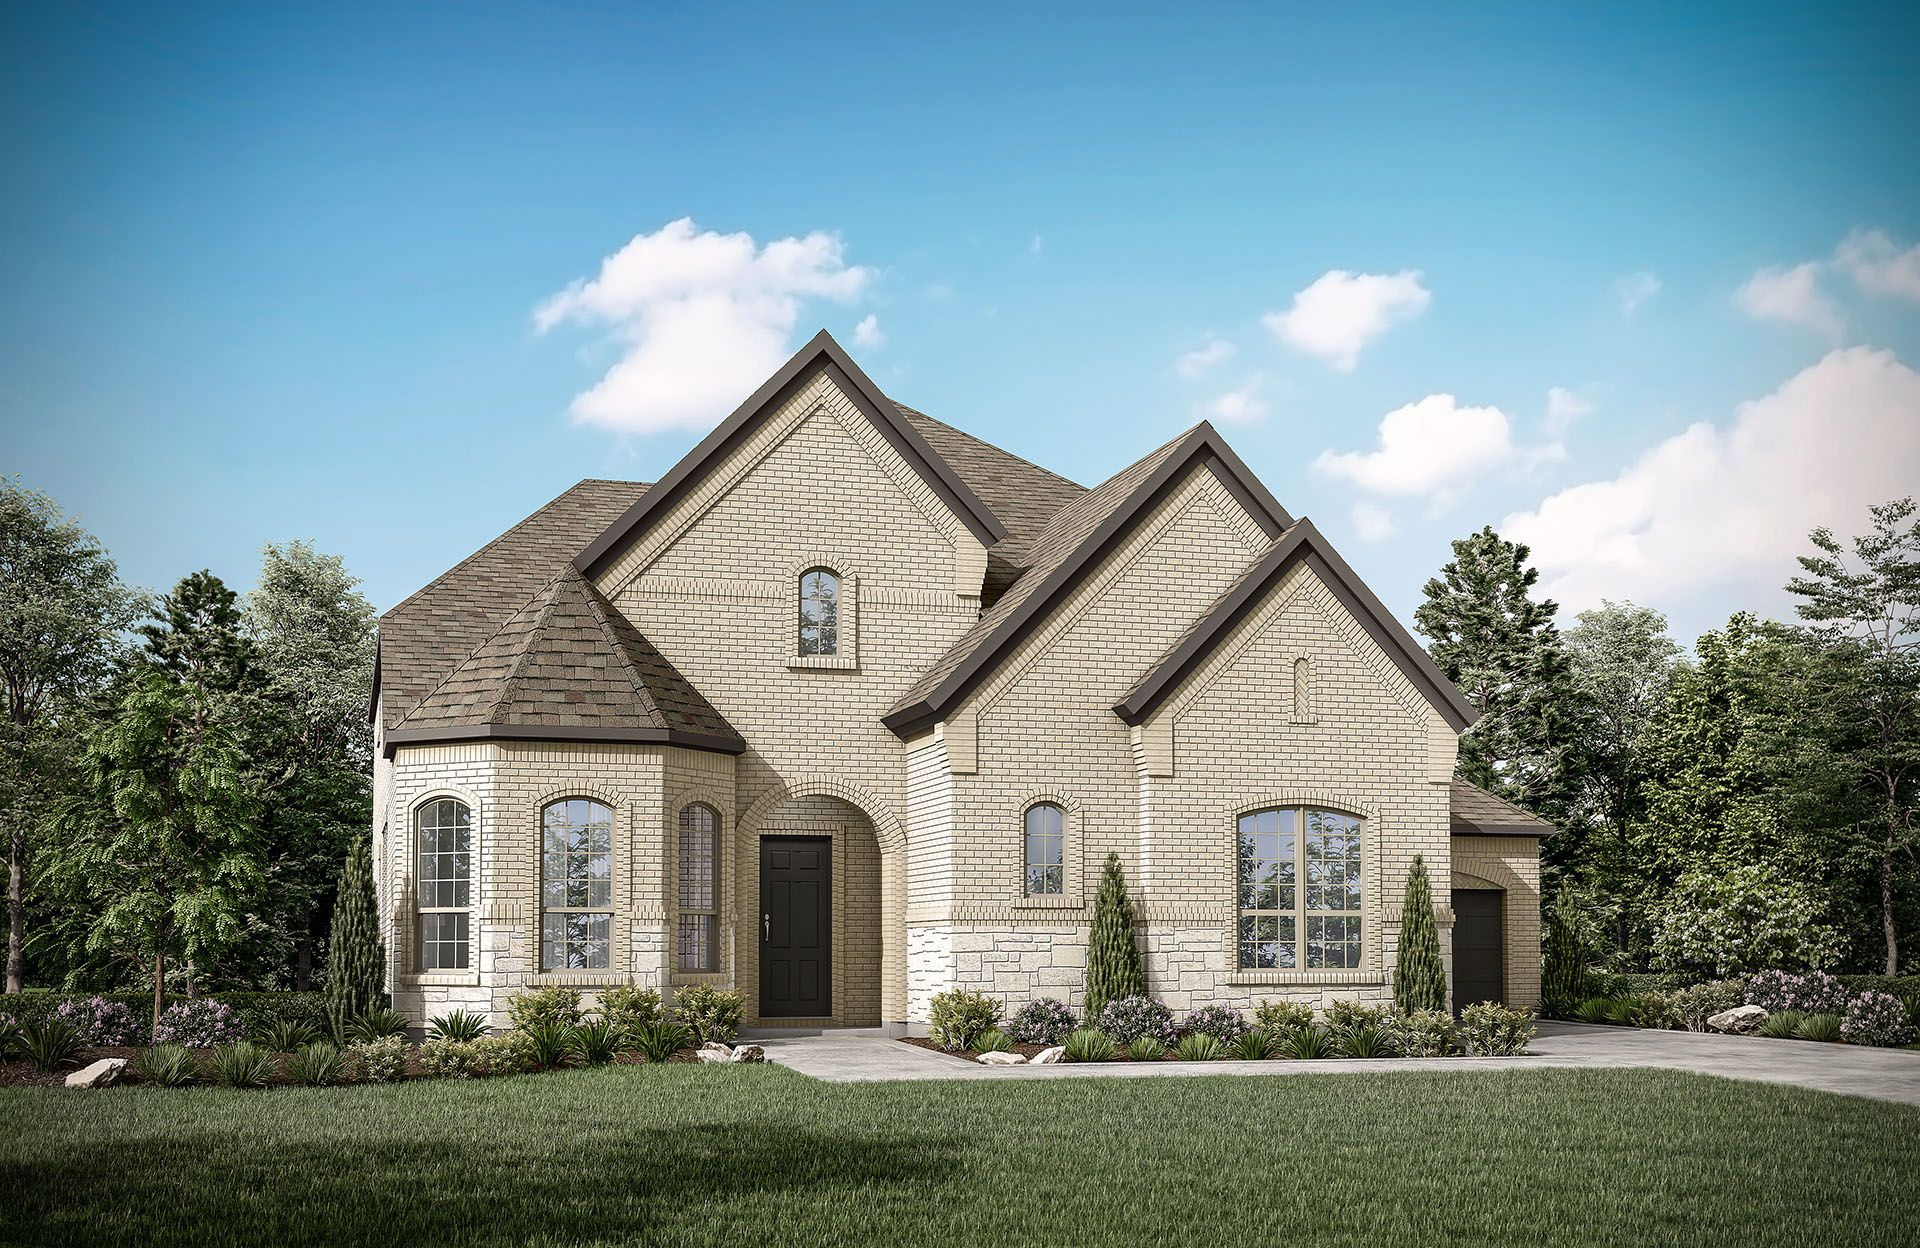 Single Family for Active at Breezy Hill - Sacramento Iii Ridgecross Drive Rockwall, Texas 75087 United States